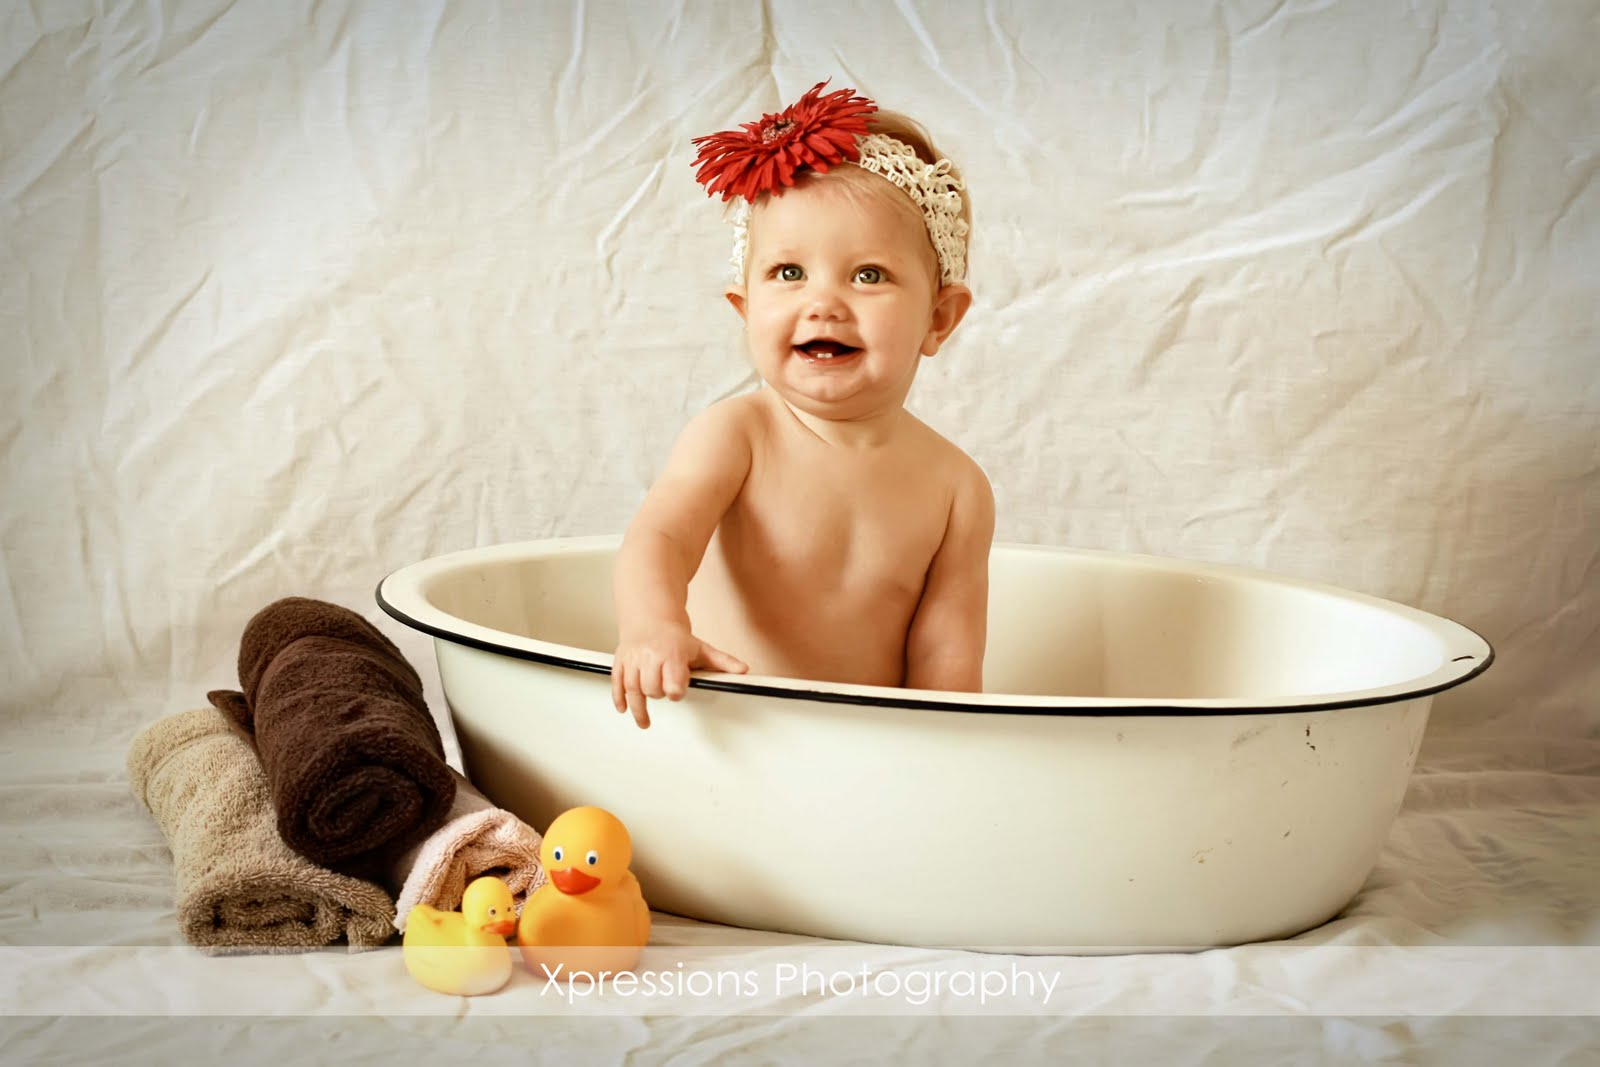 Xpressions Photography: Brynlee-9 Months Old | Utah Photographer